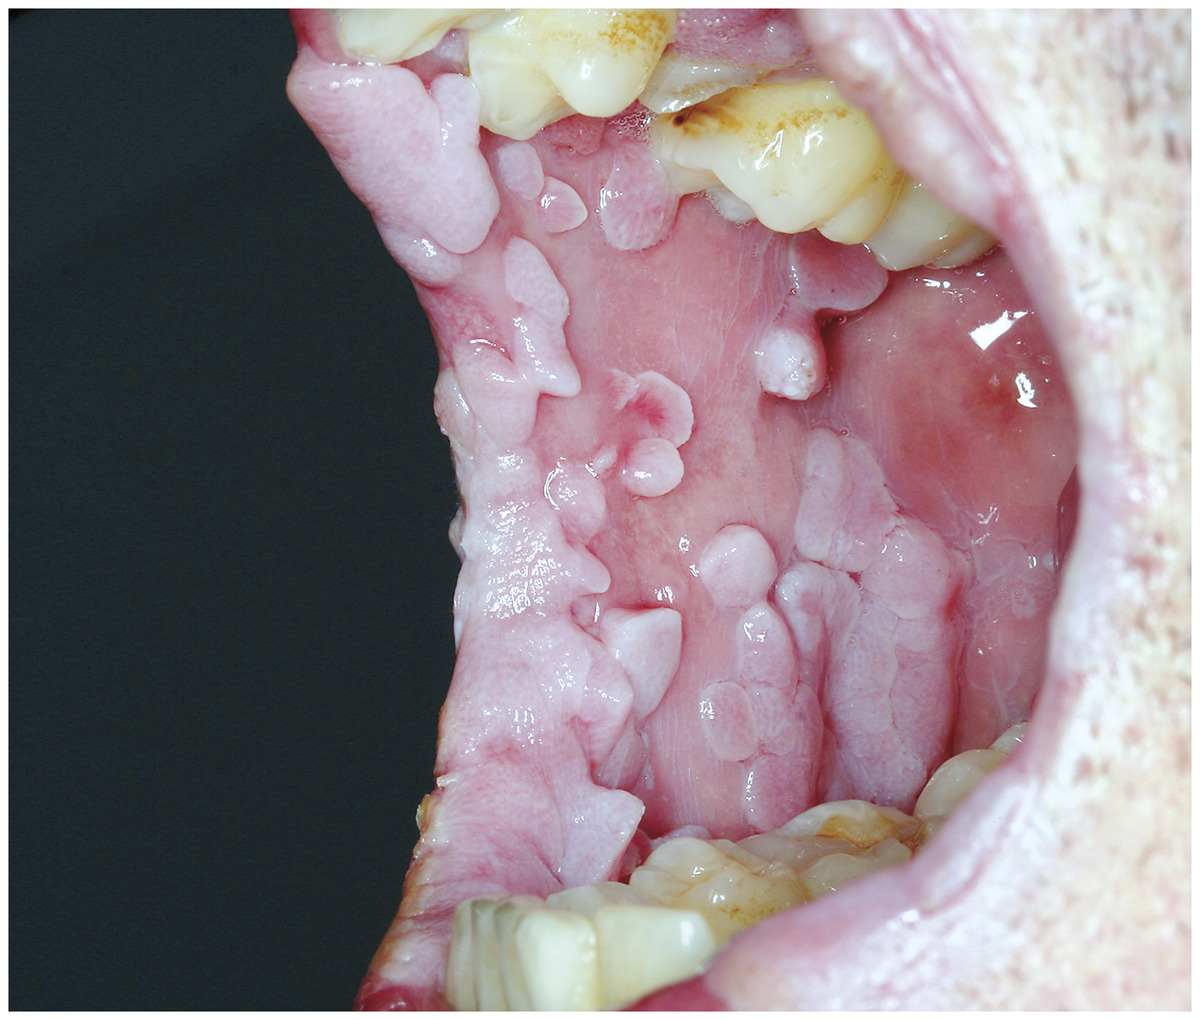 hpv tongue warts